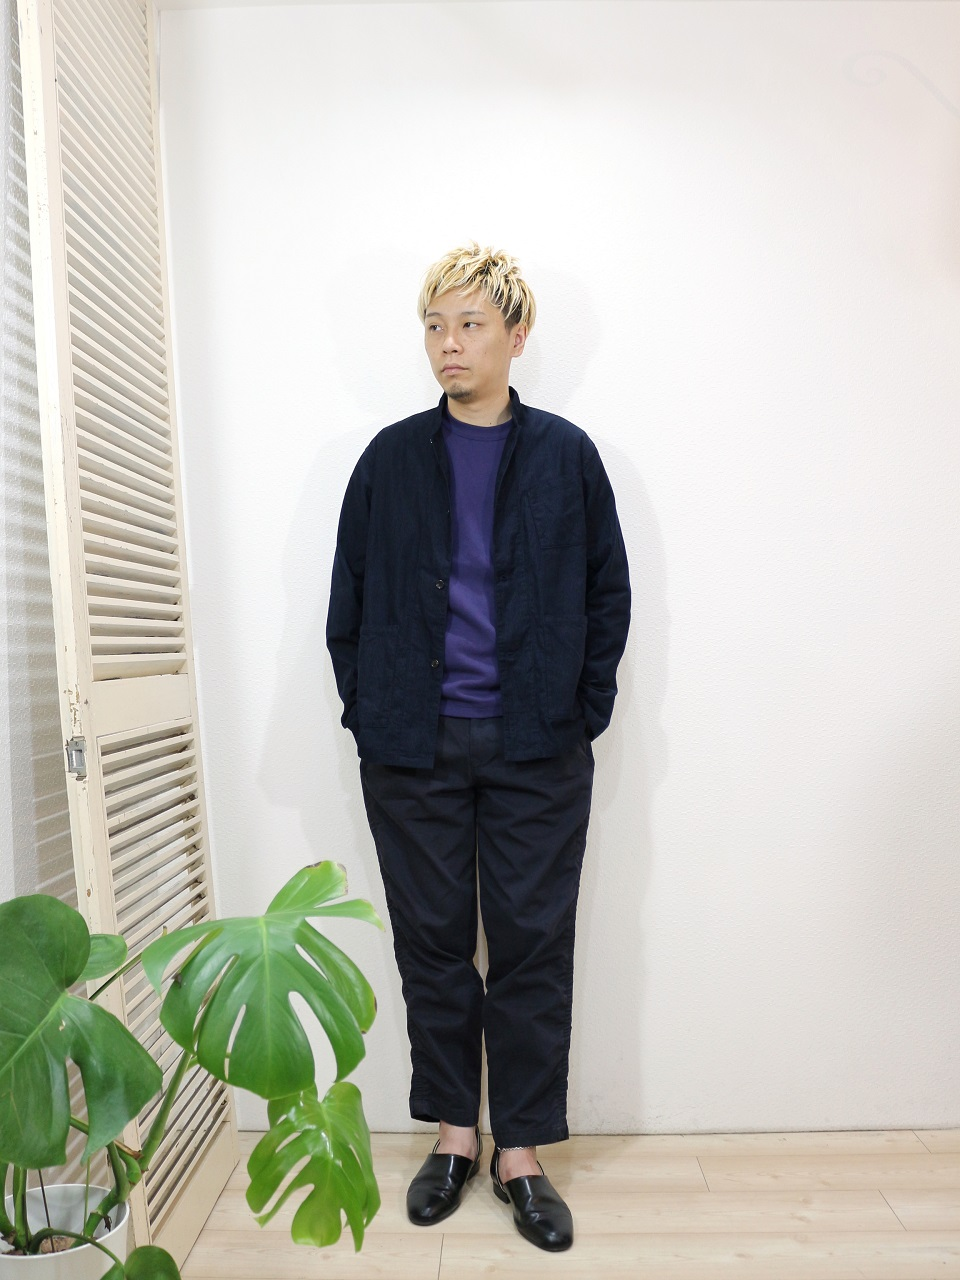 outer/MANUAL ALPHABET-CORDUROY WORK SHT JKT(SIZE 1)tee/MANUAL ALPHABET-MILITARY FRAISE CREW NECK L/S TEE(SIZE 1)pants/Kelen-Max(SIZE 38)を使ったコーディネート